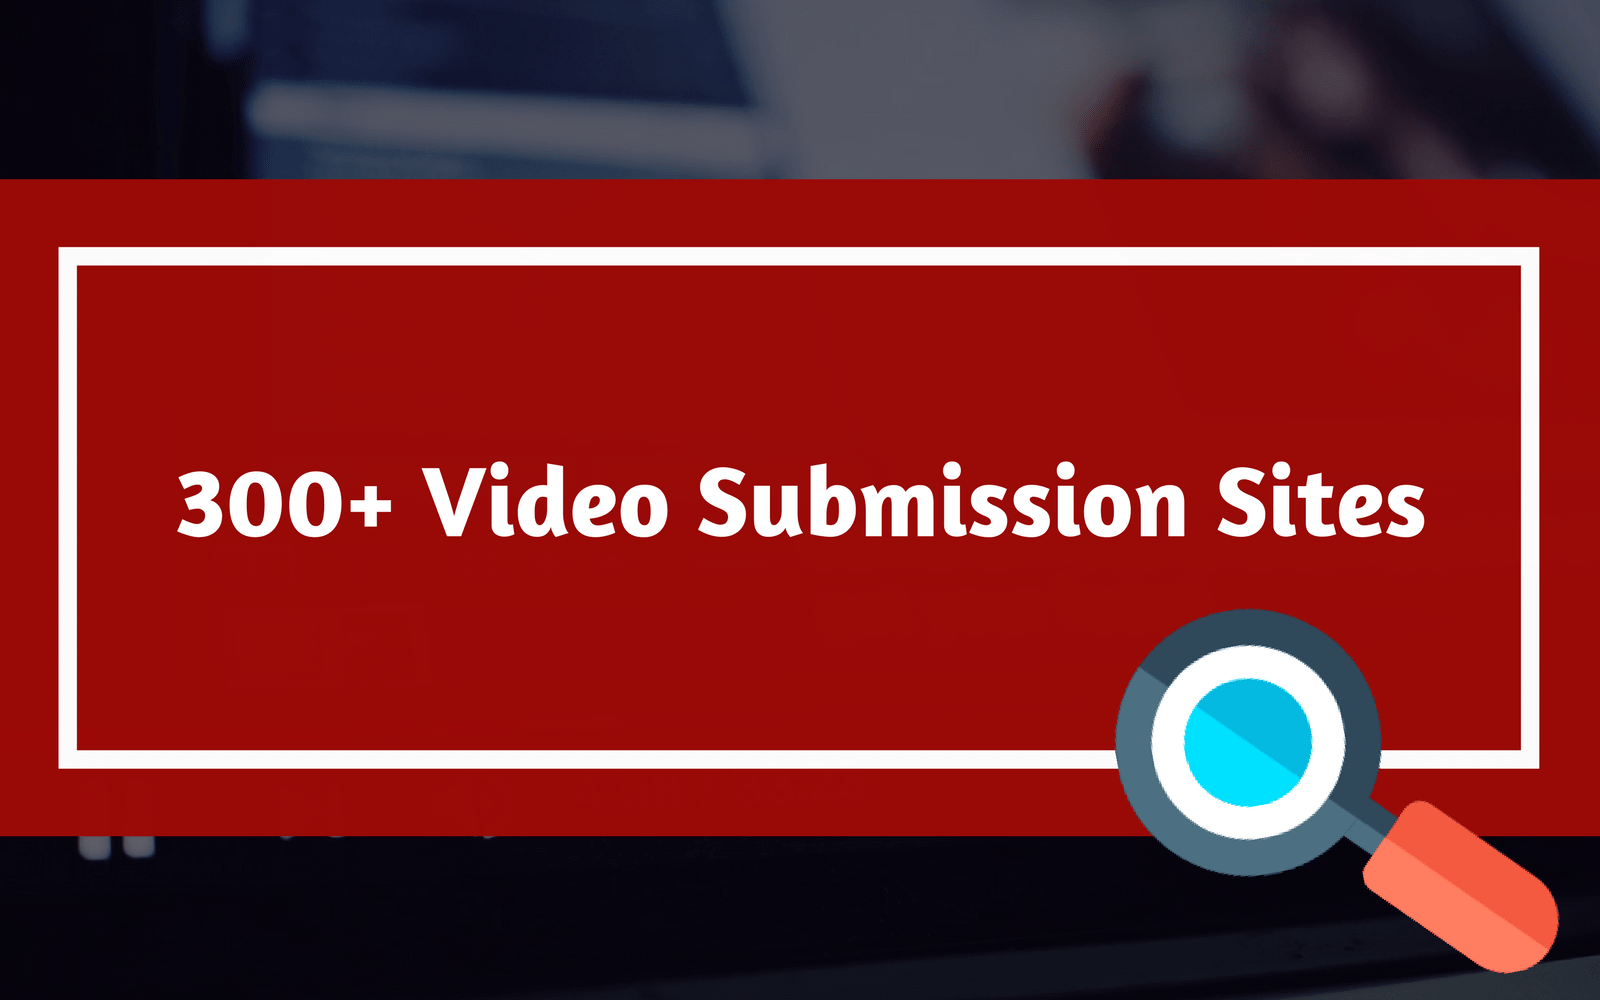 video submission sites 2018 image